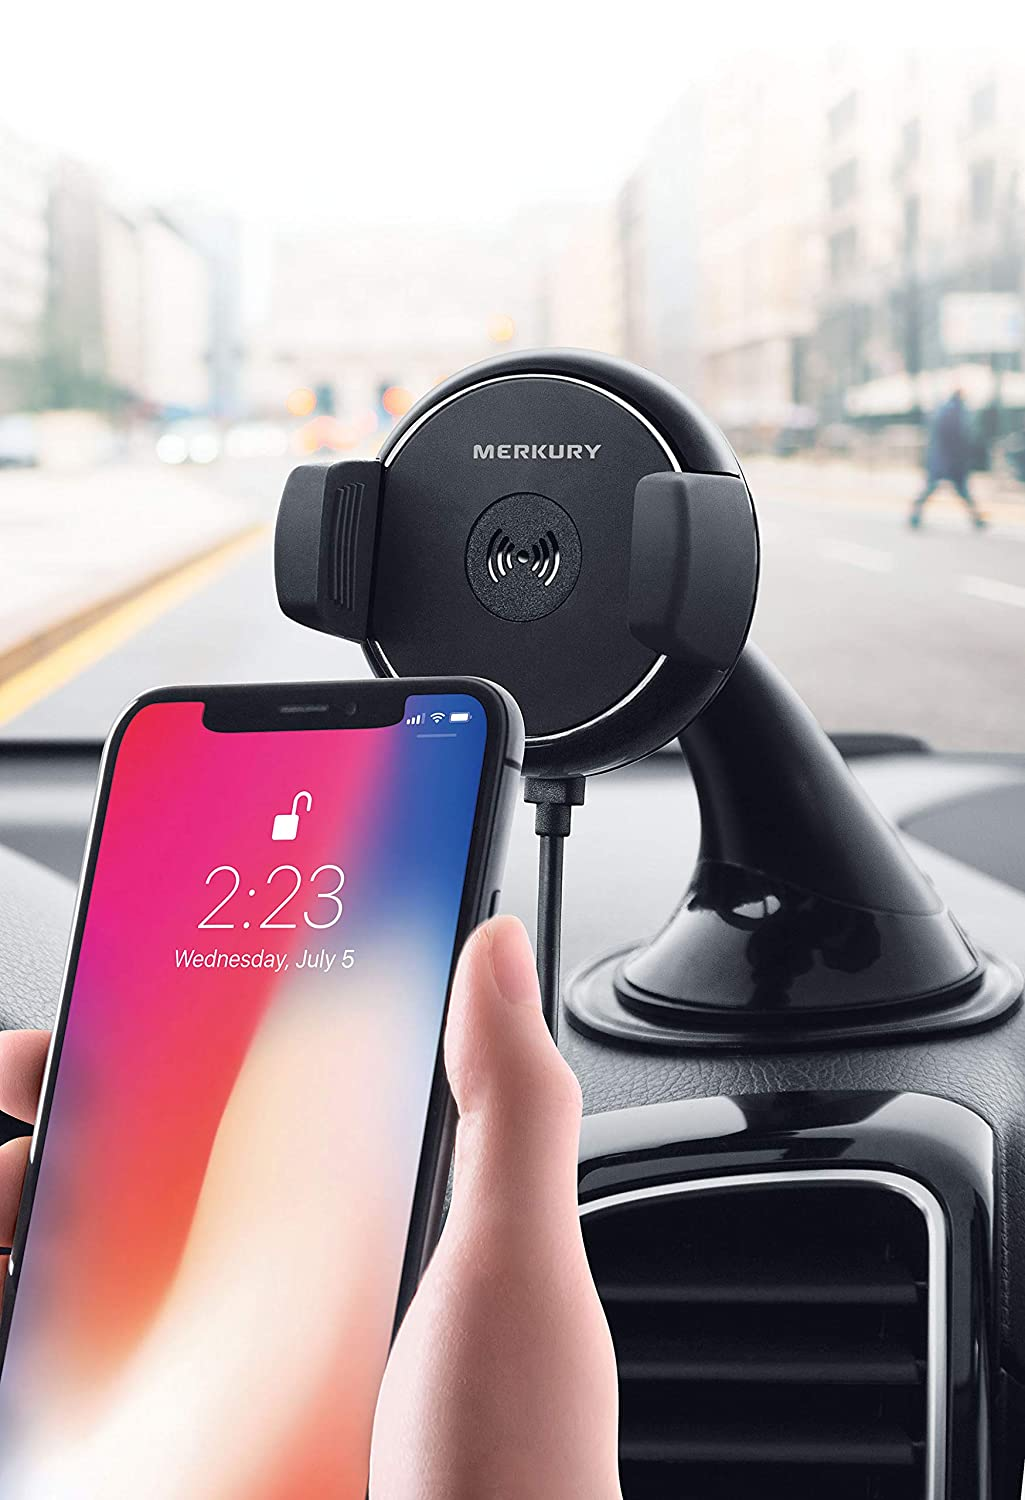 Merkury Innovations Qi Certified Fast Charge Wireless Charger//Power Mount for Car Windshield or Dashboard Compatible with iPhone X 8//8 Plus Samsung Galaxy S8 Note 8 /& More Qi Devices